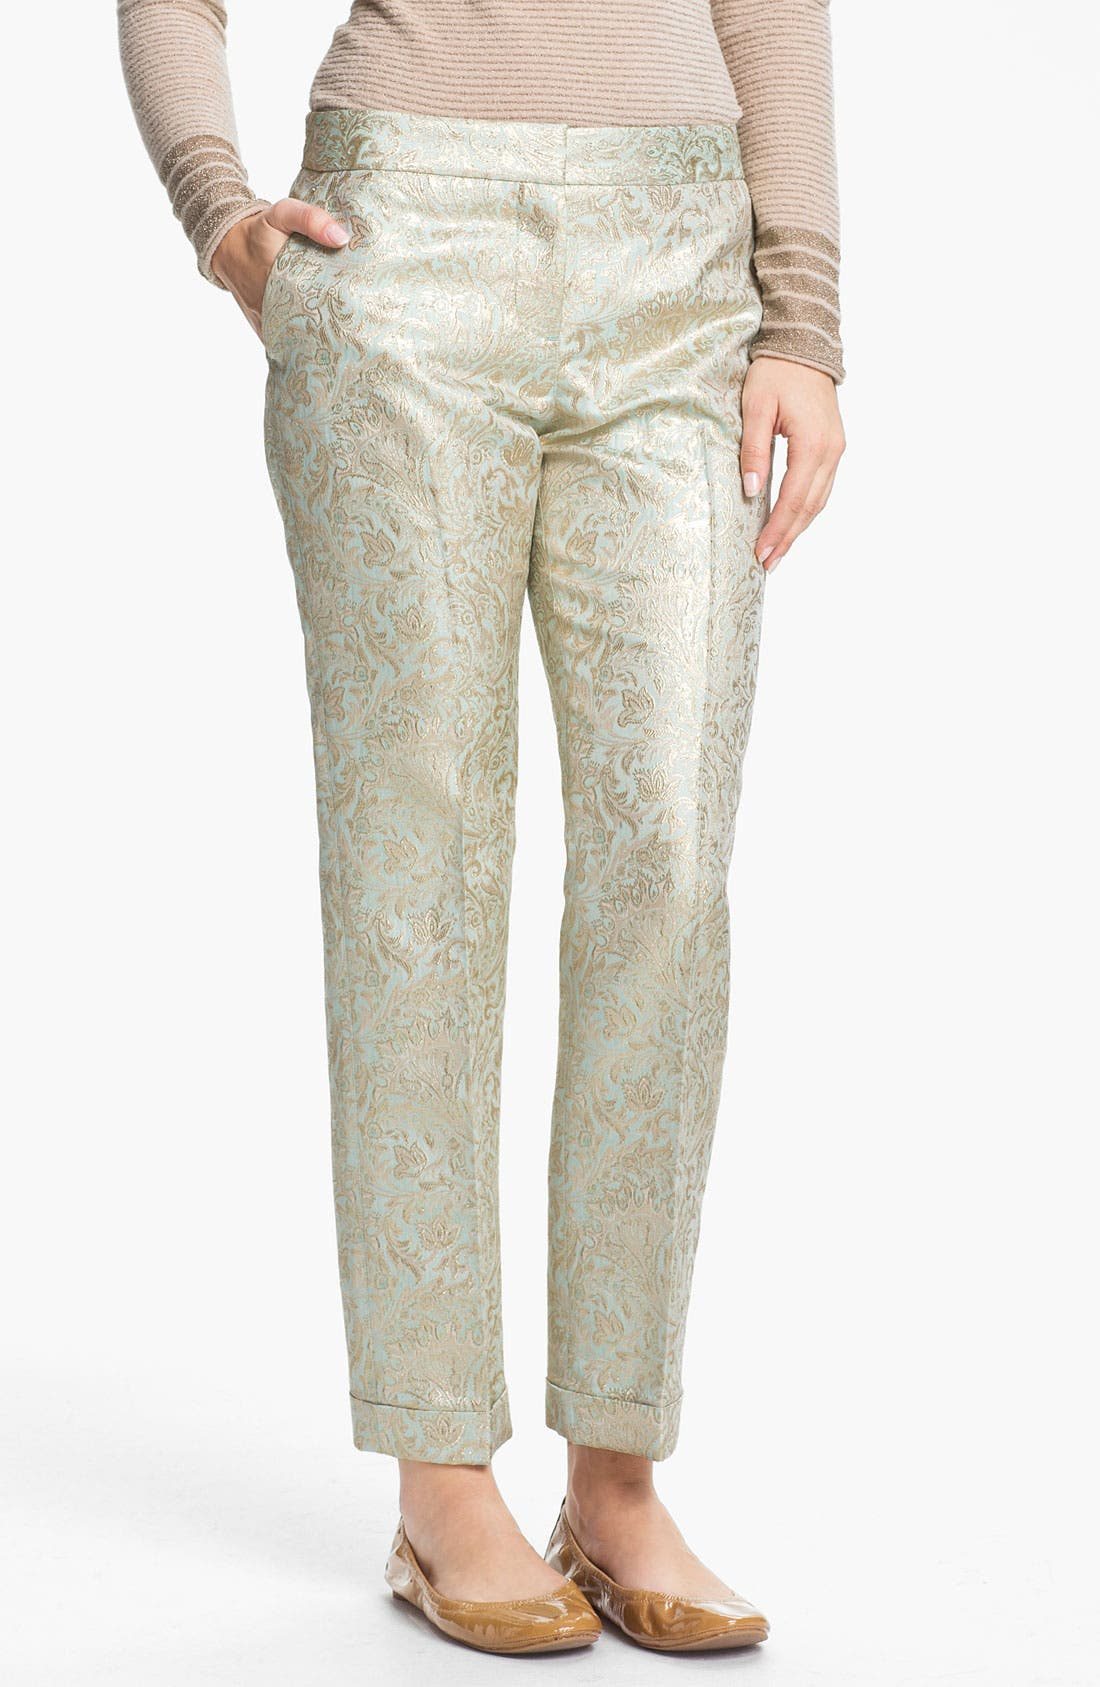 Alternate Image 1 Selected - Tory Burch 'Lola' Metallic Silk Pants